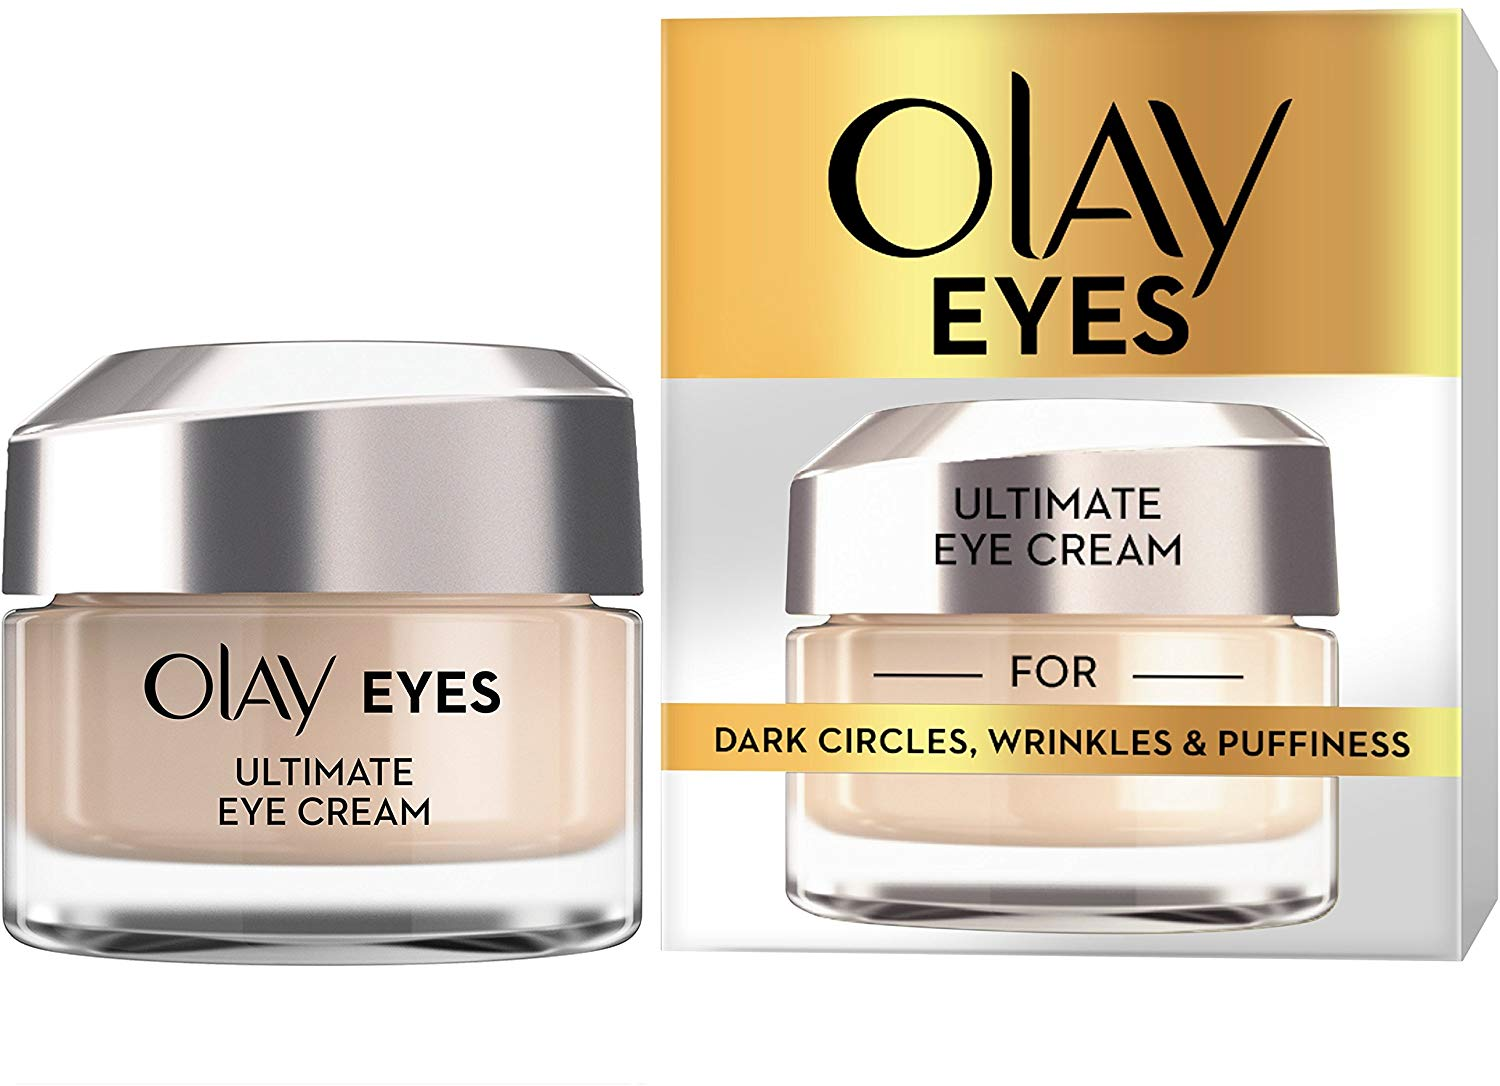 40% off Olay Eyes Ultimate Eye Cream, 15 ml